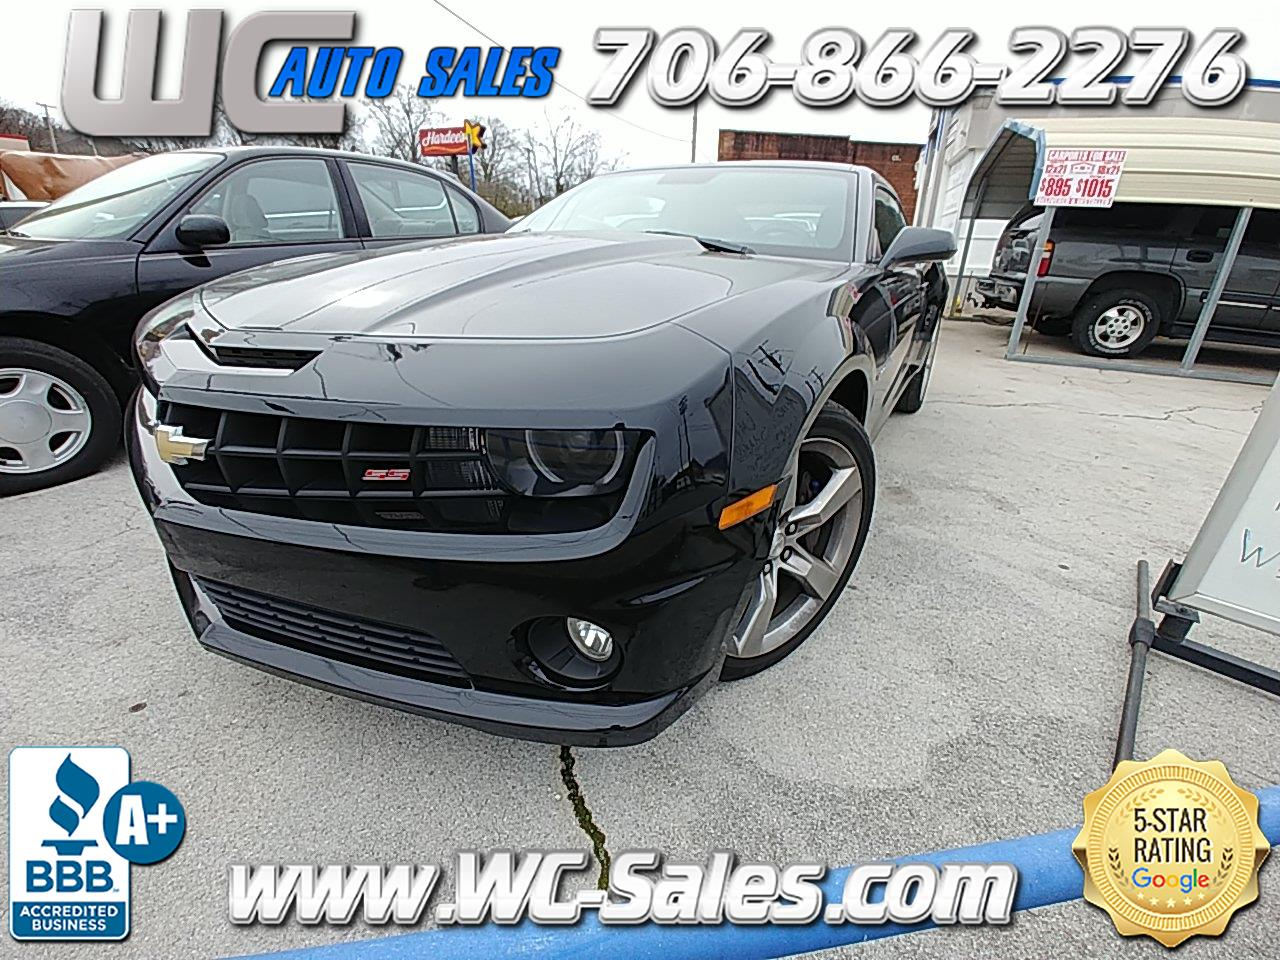 Cars For Sale Chattanooga >> Used Cars For Sale Chattanooga Tn 30741 Wc Auto Sales